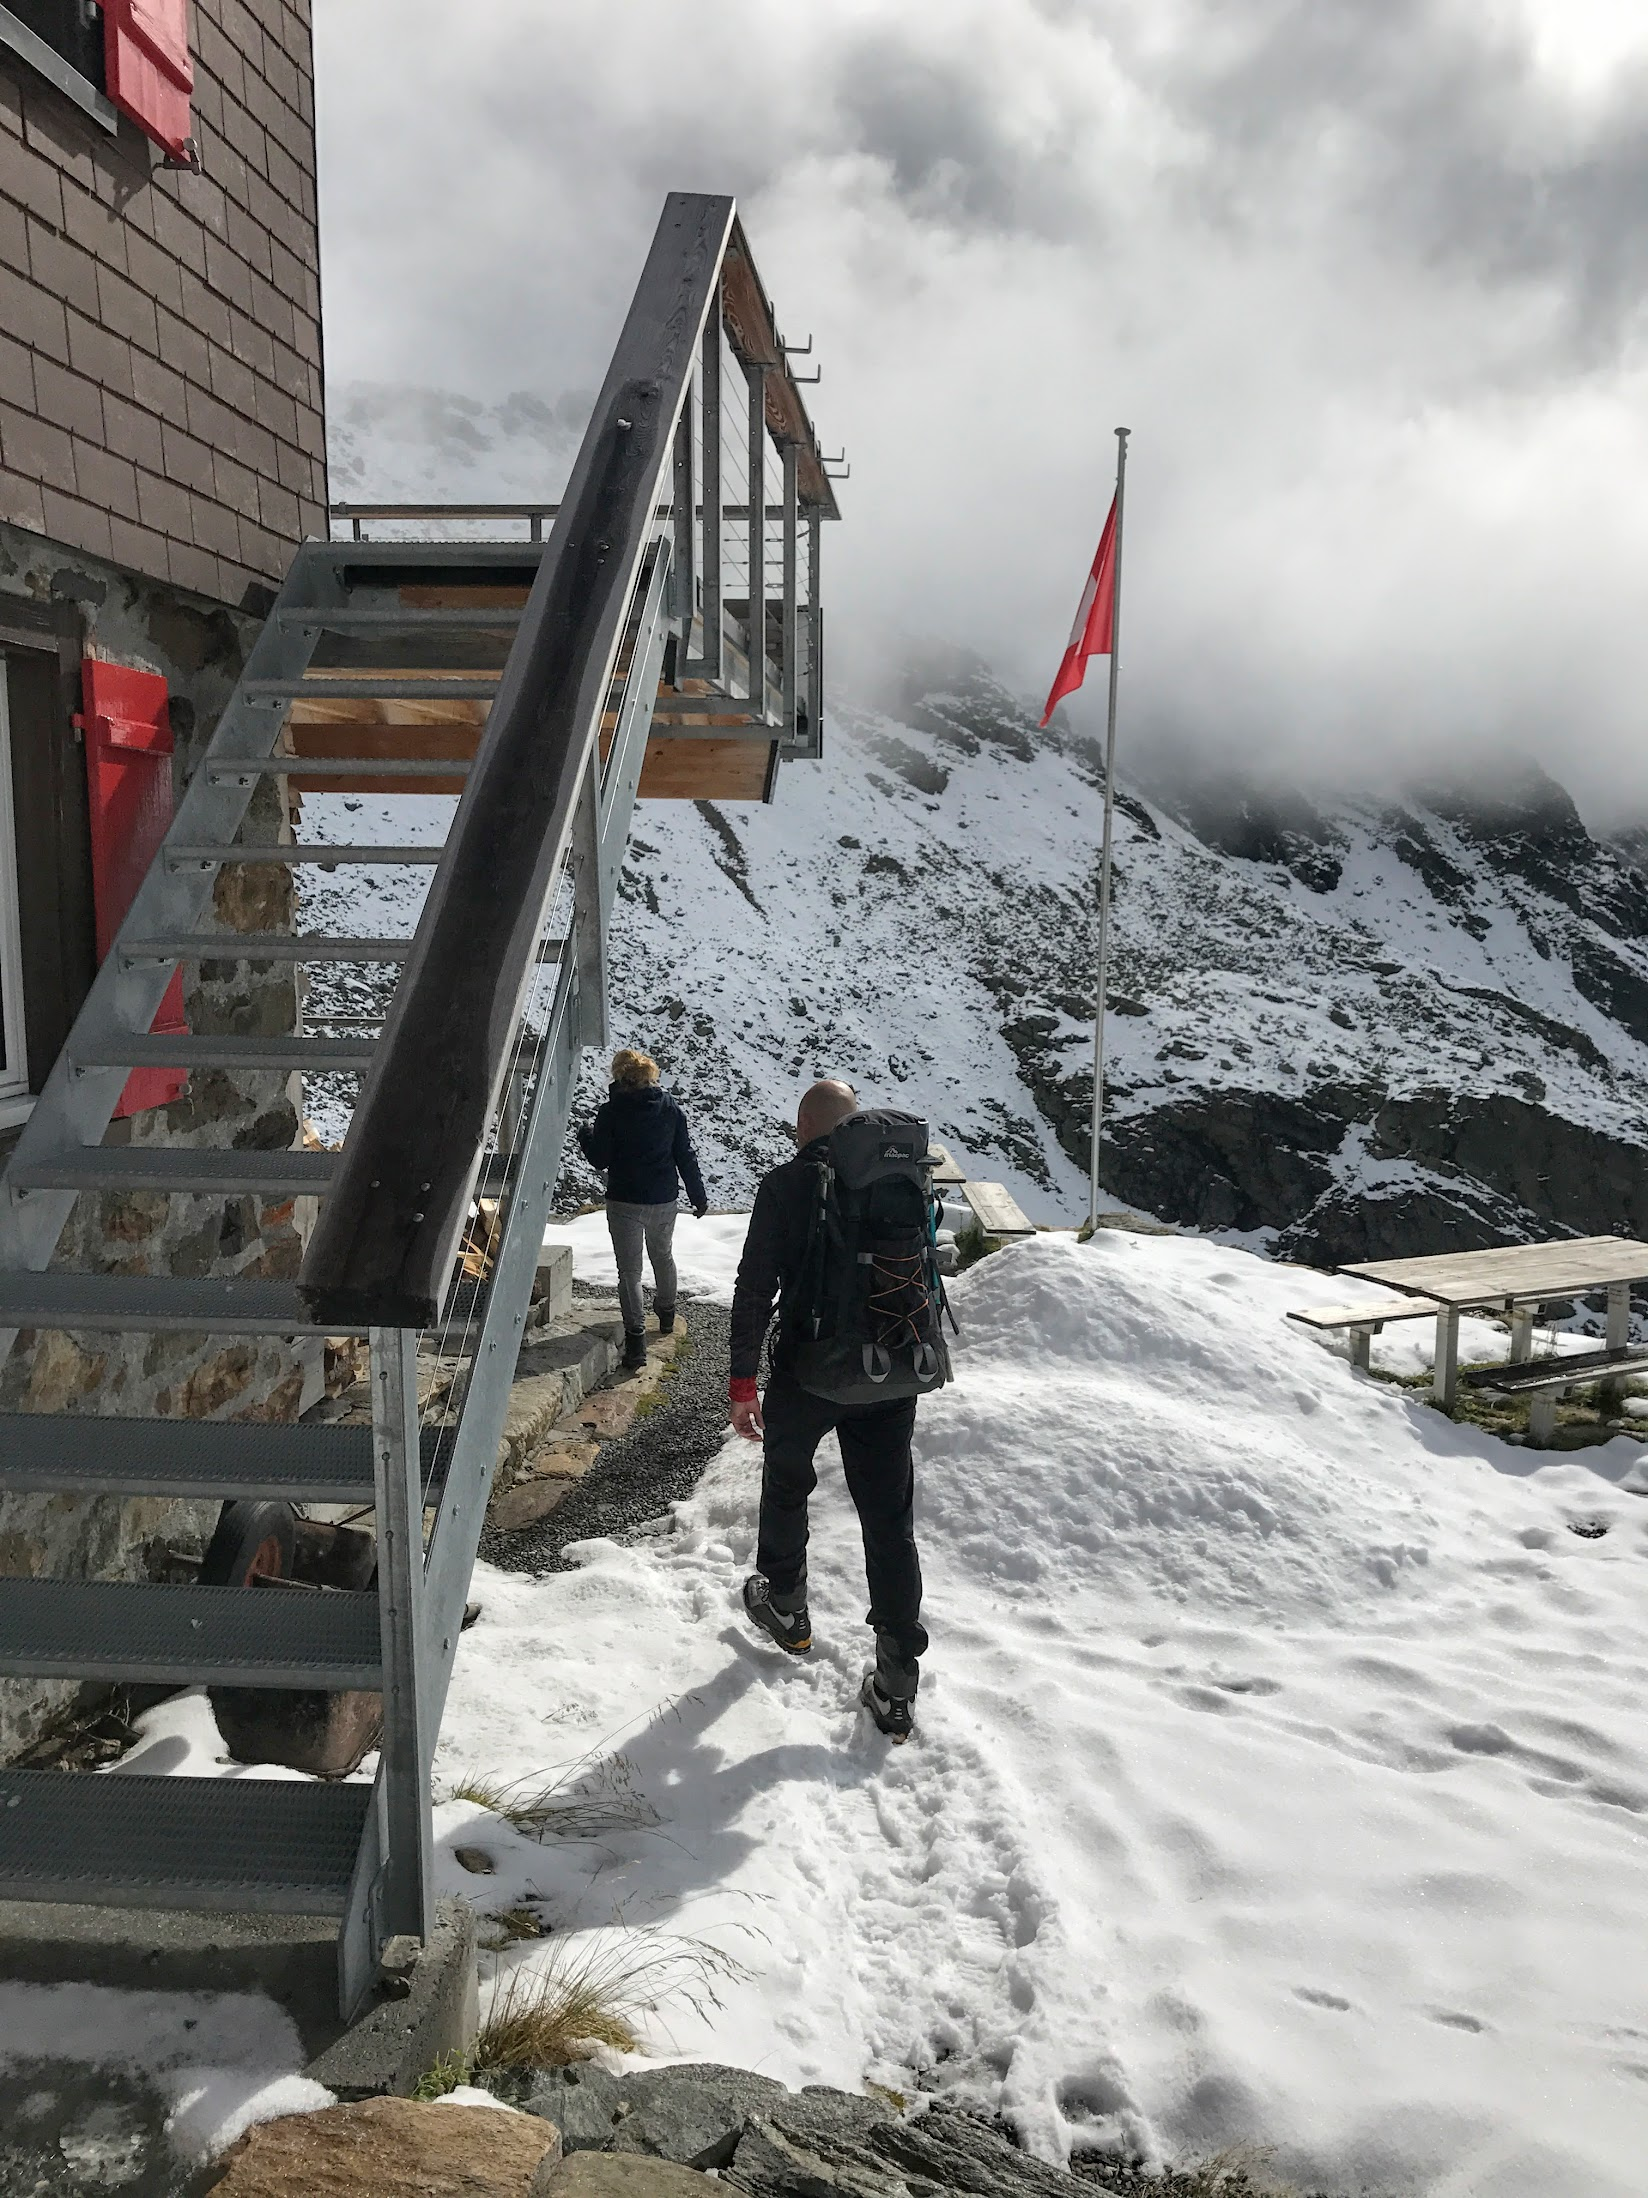 Marijn arriving at the Silvretta Hut